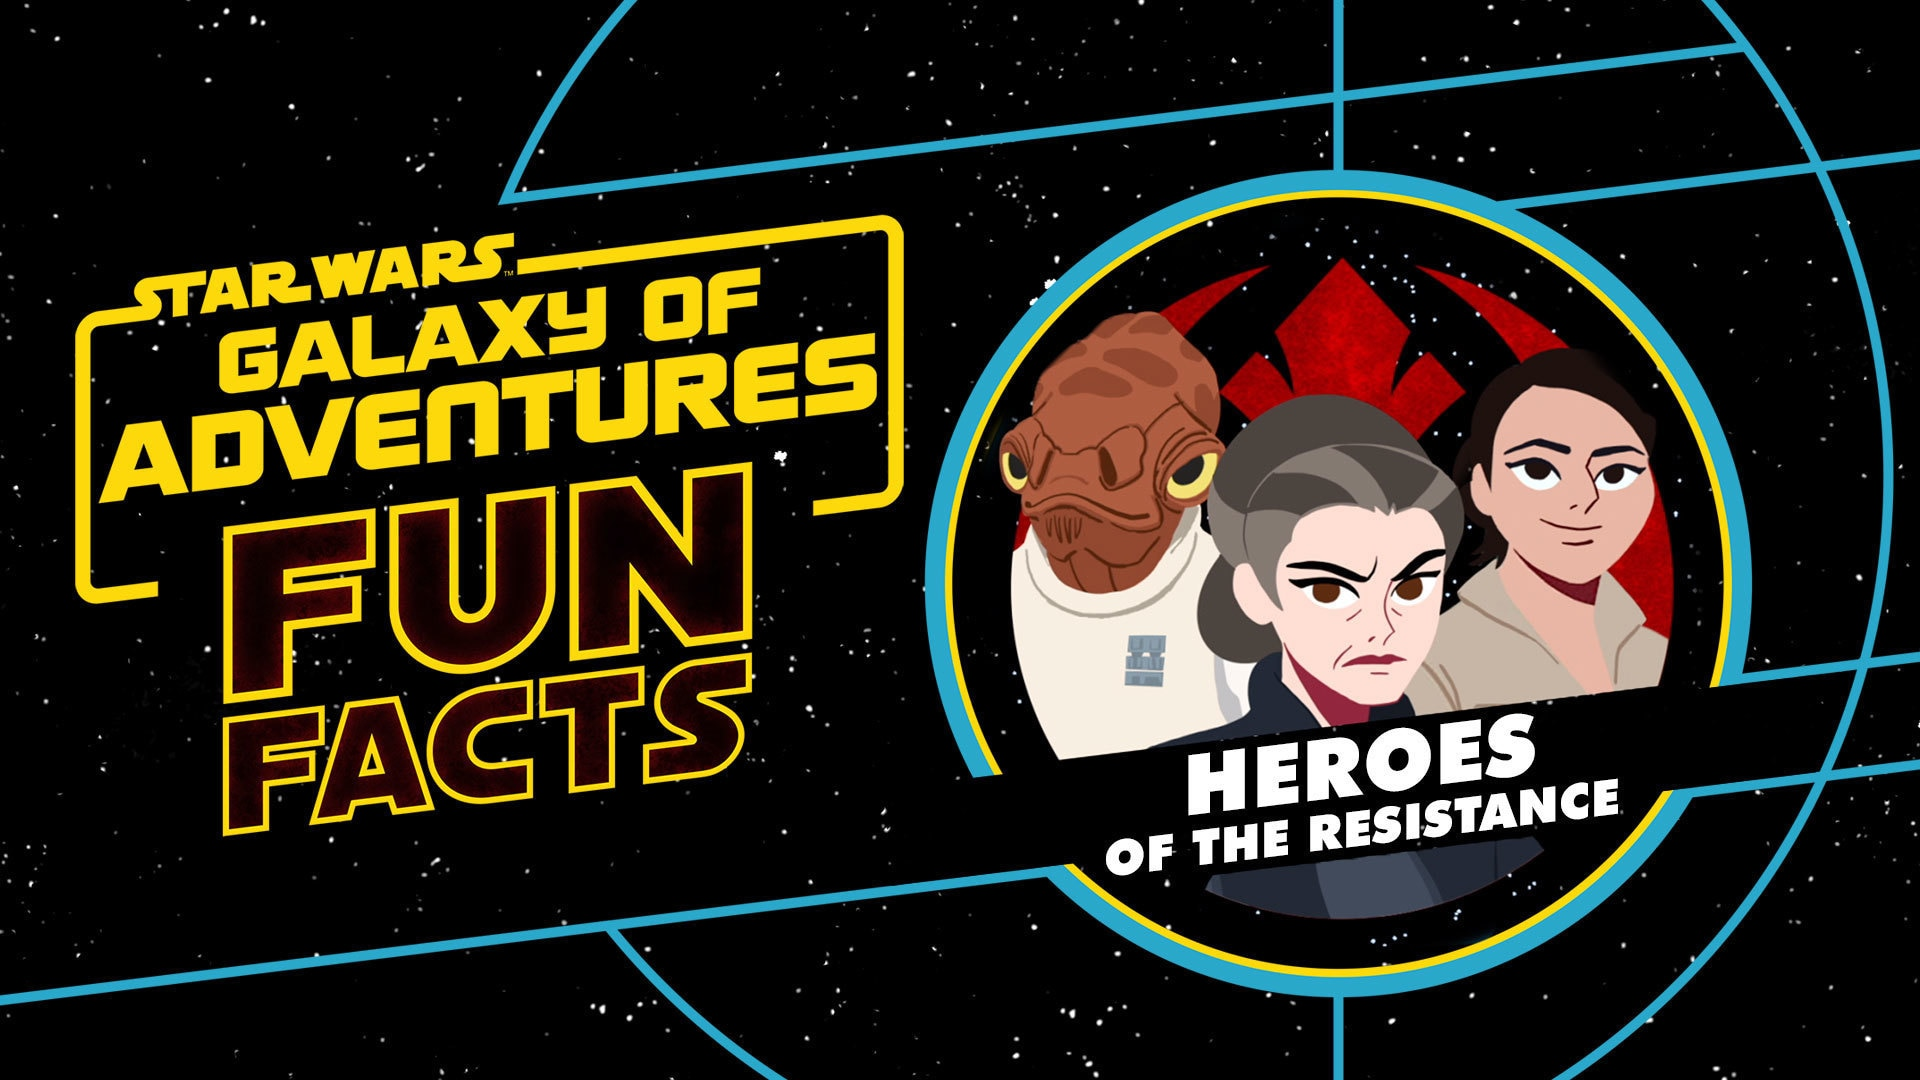 Heroes of the Resistance | Star Wars Galaxy of Adventures Fun Facts